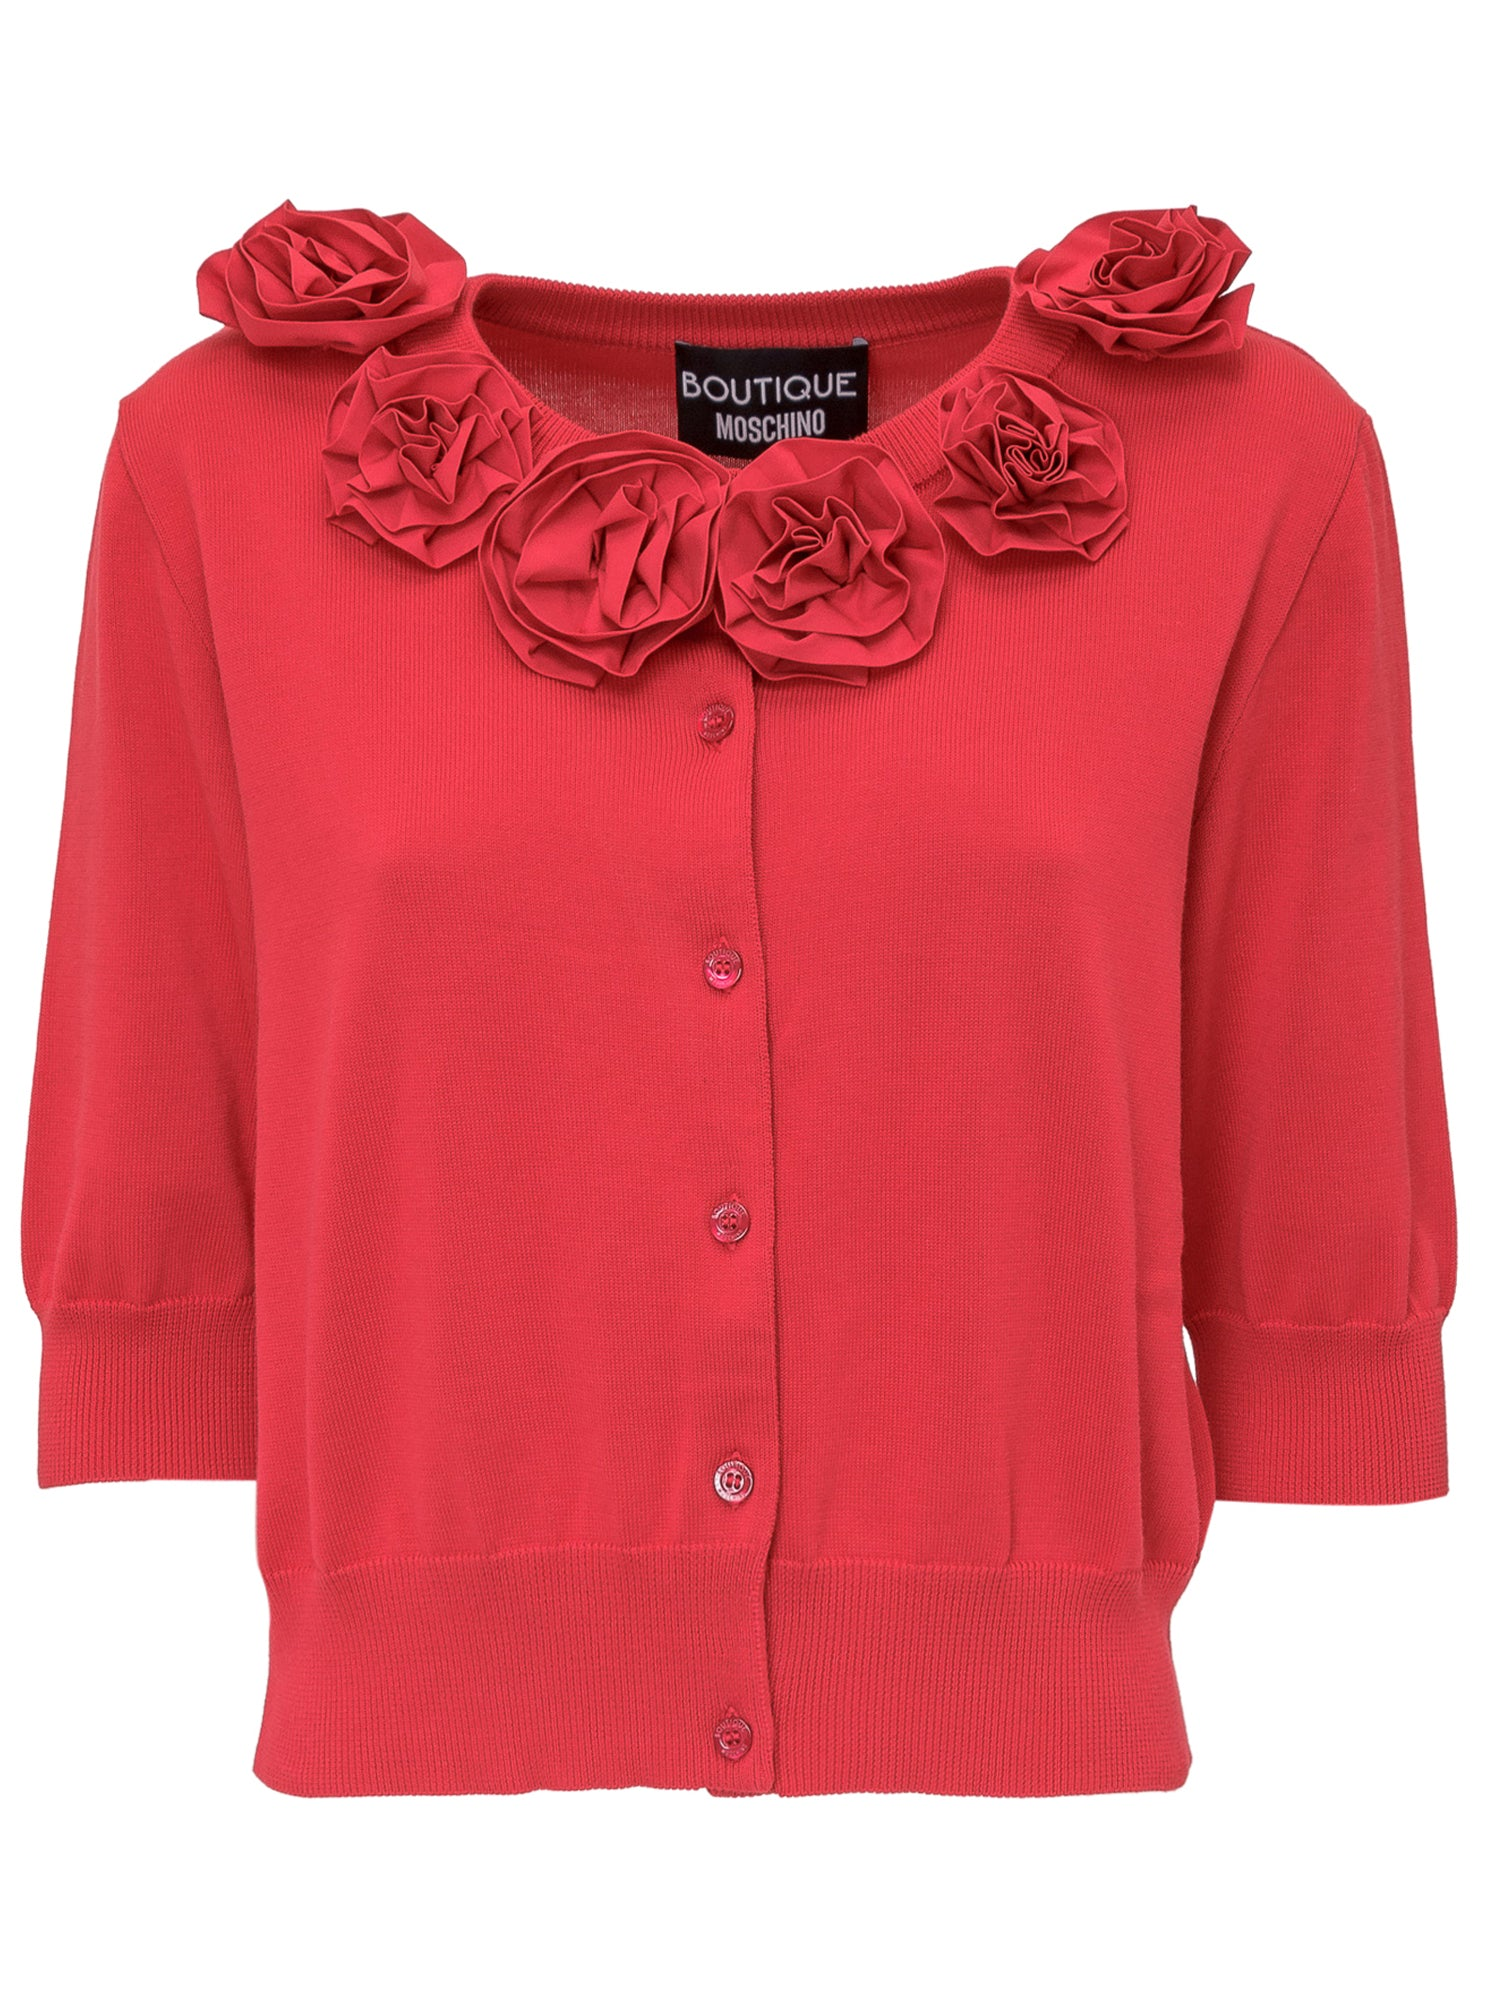 Boutique Moschino Cottons BOUTIQUE MOSCHINO FLORAL COLLAR CARDIGAN